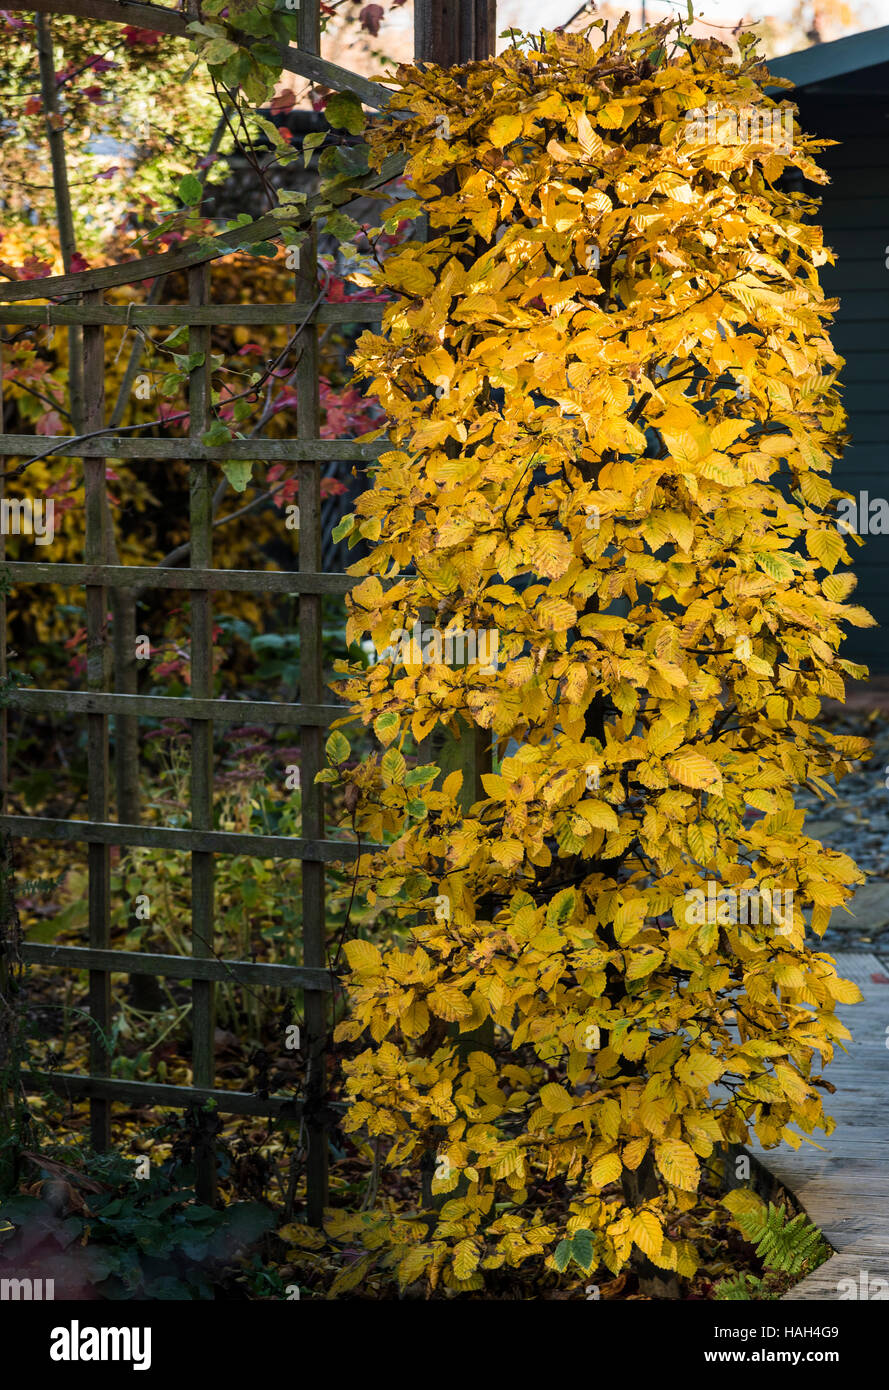 Carpinus betulus Hornbeam. Betulaceae. Trimmed and shaped into a coloumn. - Stock Image